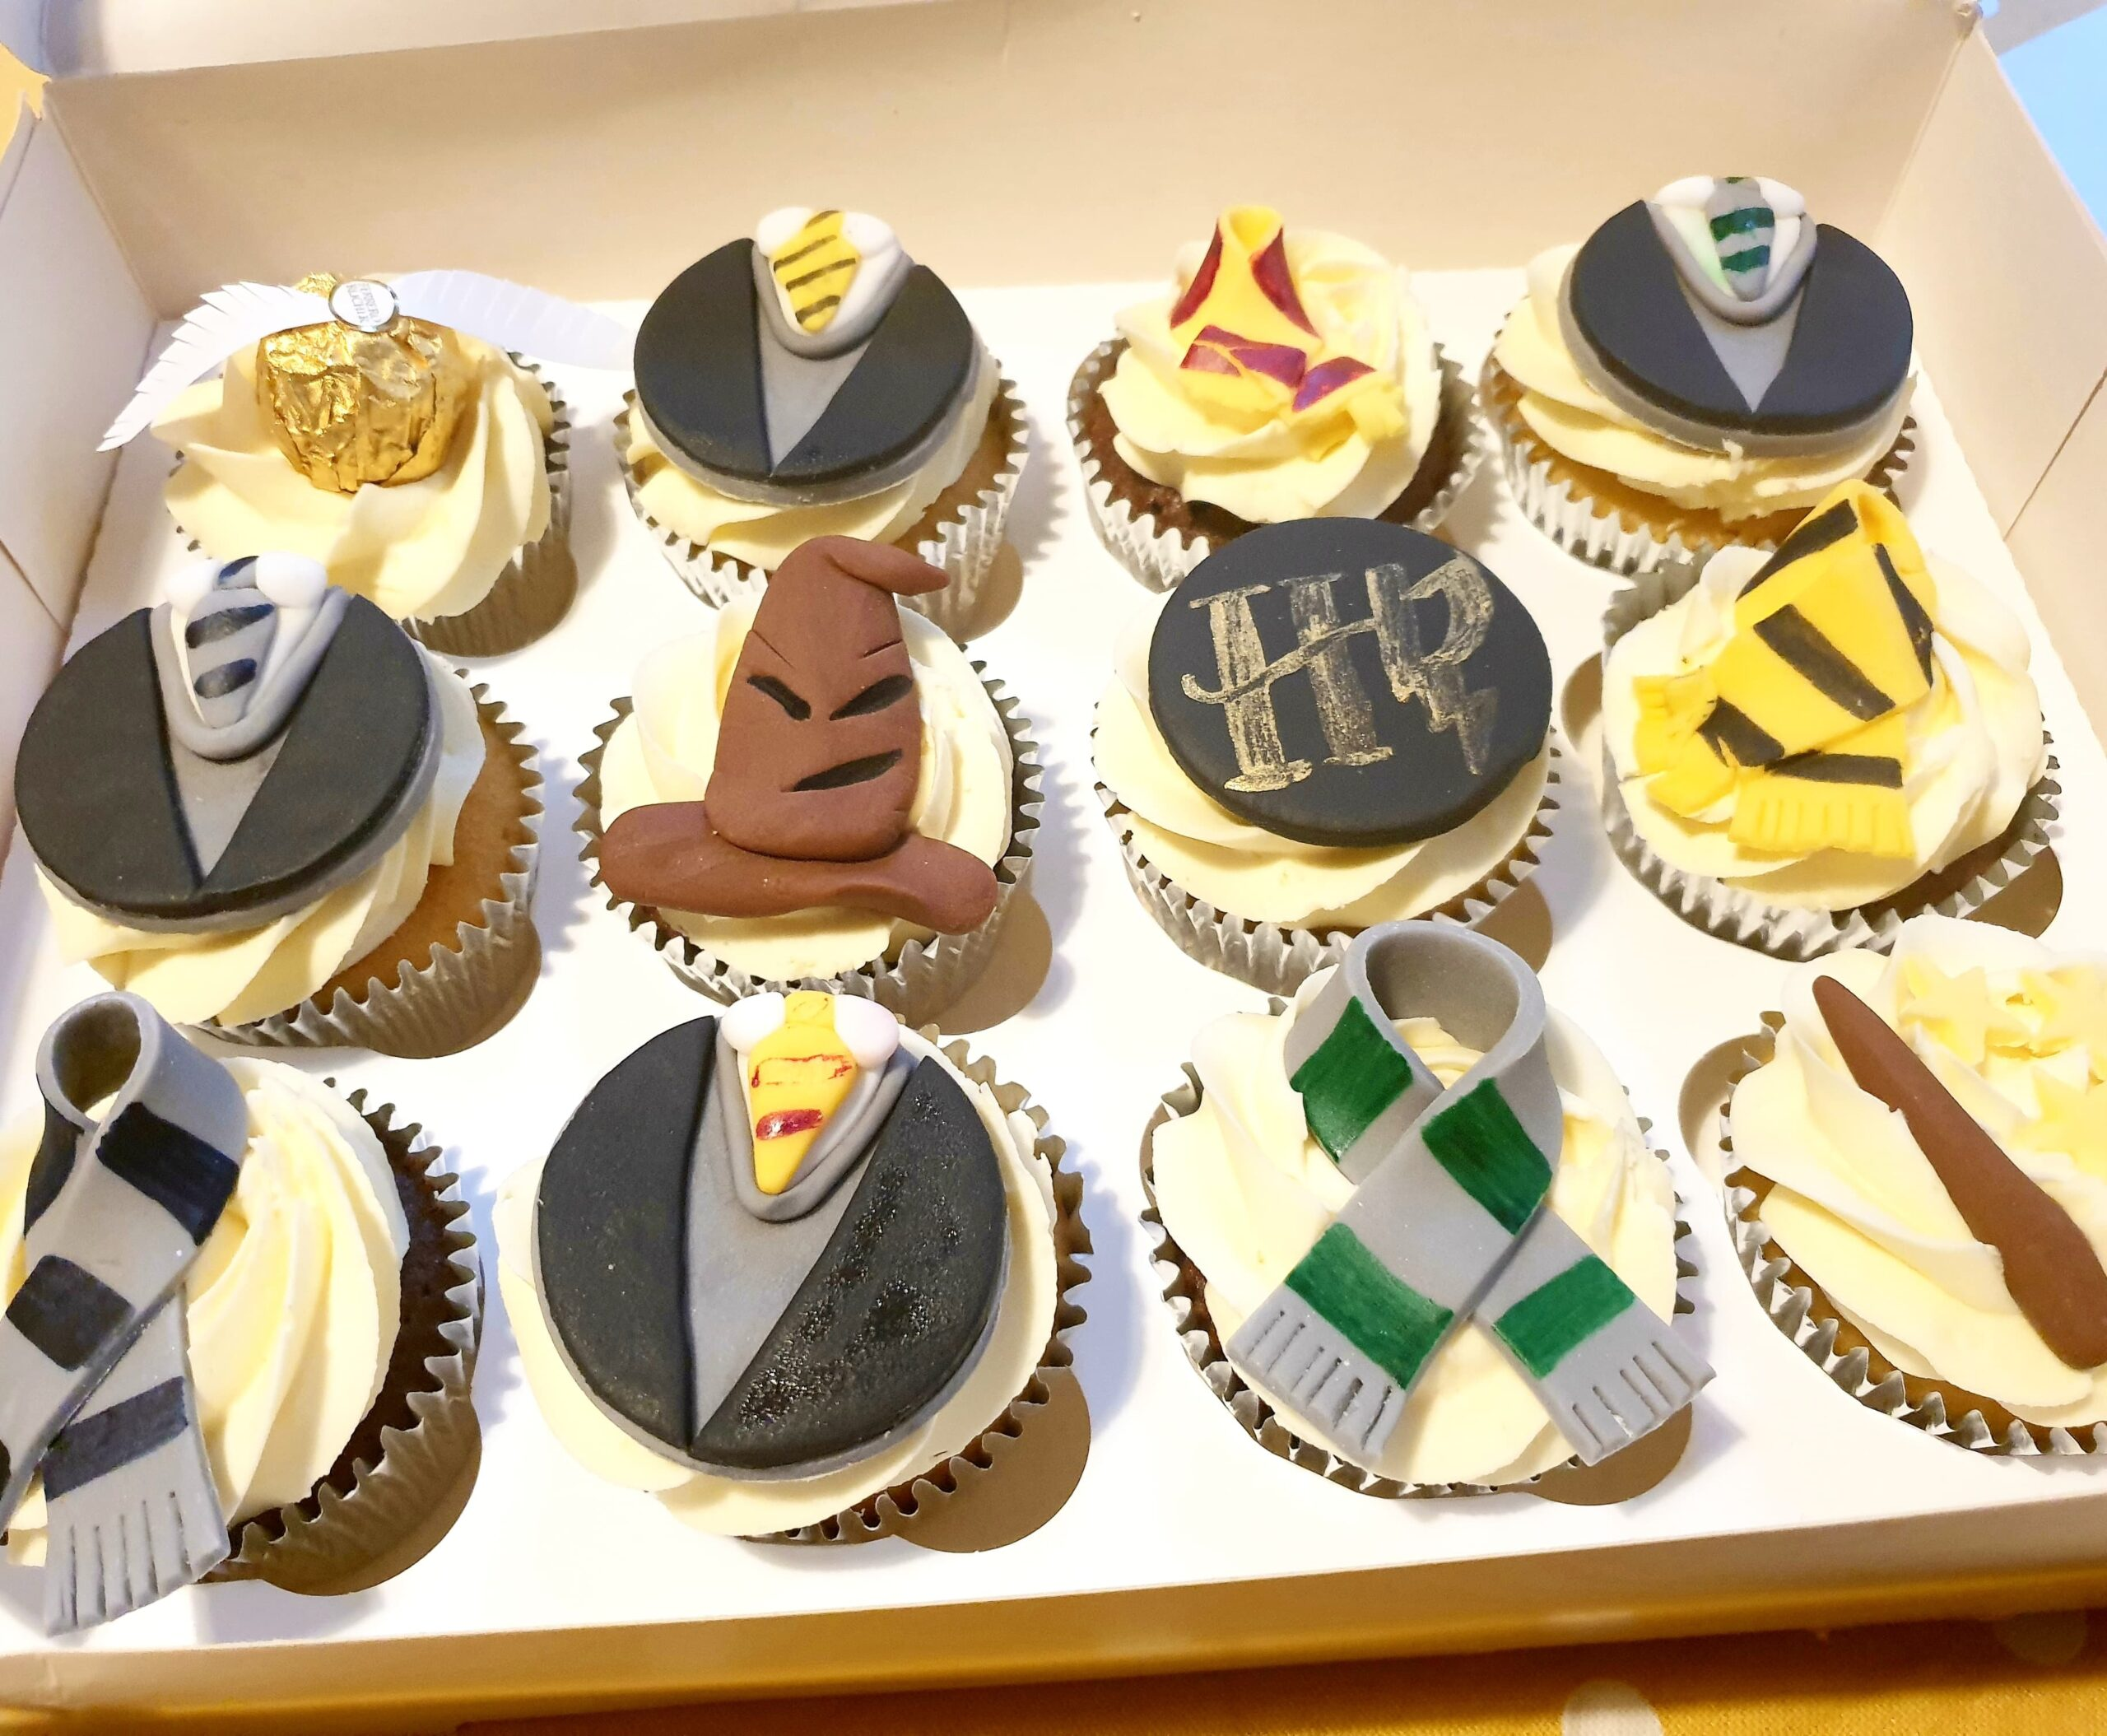 Harry Potter Cupcakes from Ben's Bakes